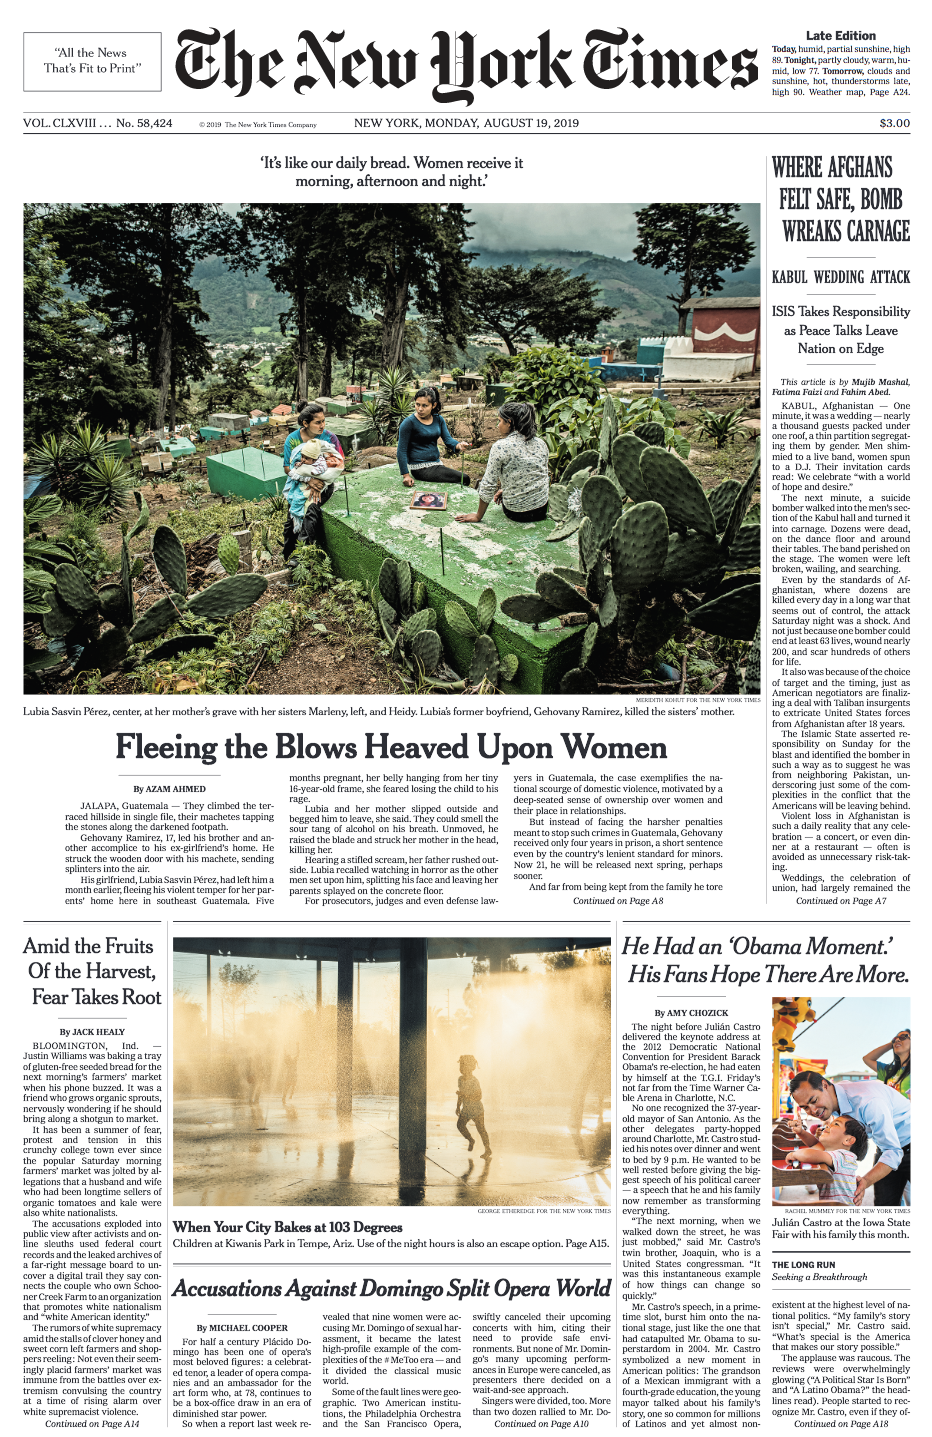 NYT_FrontPage_081919.png